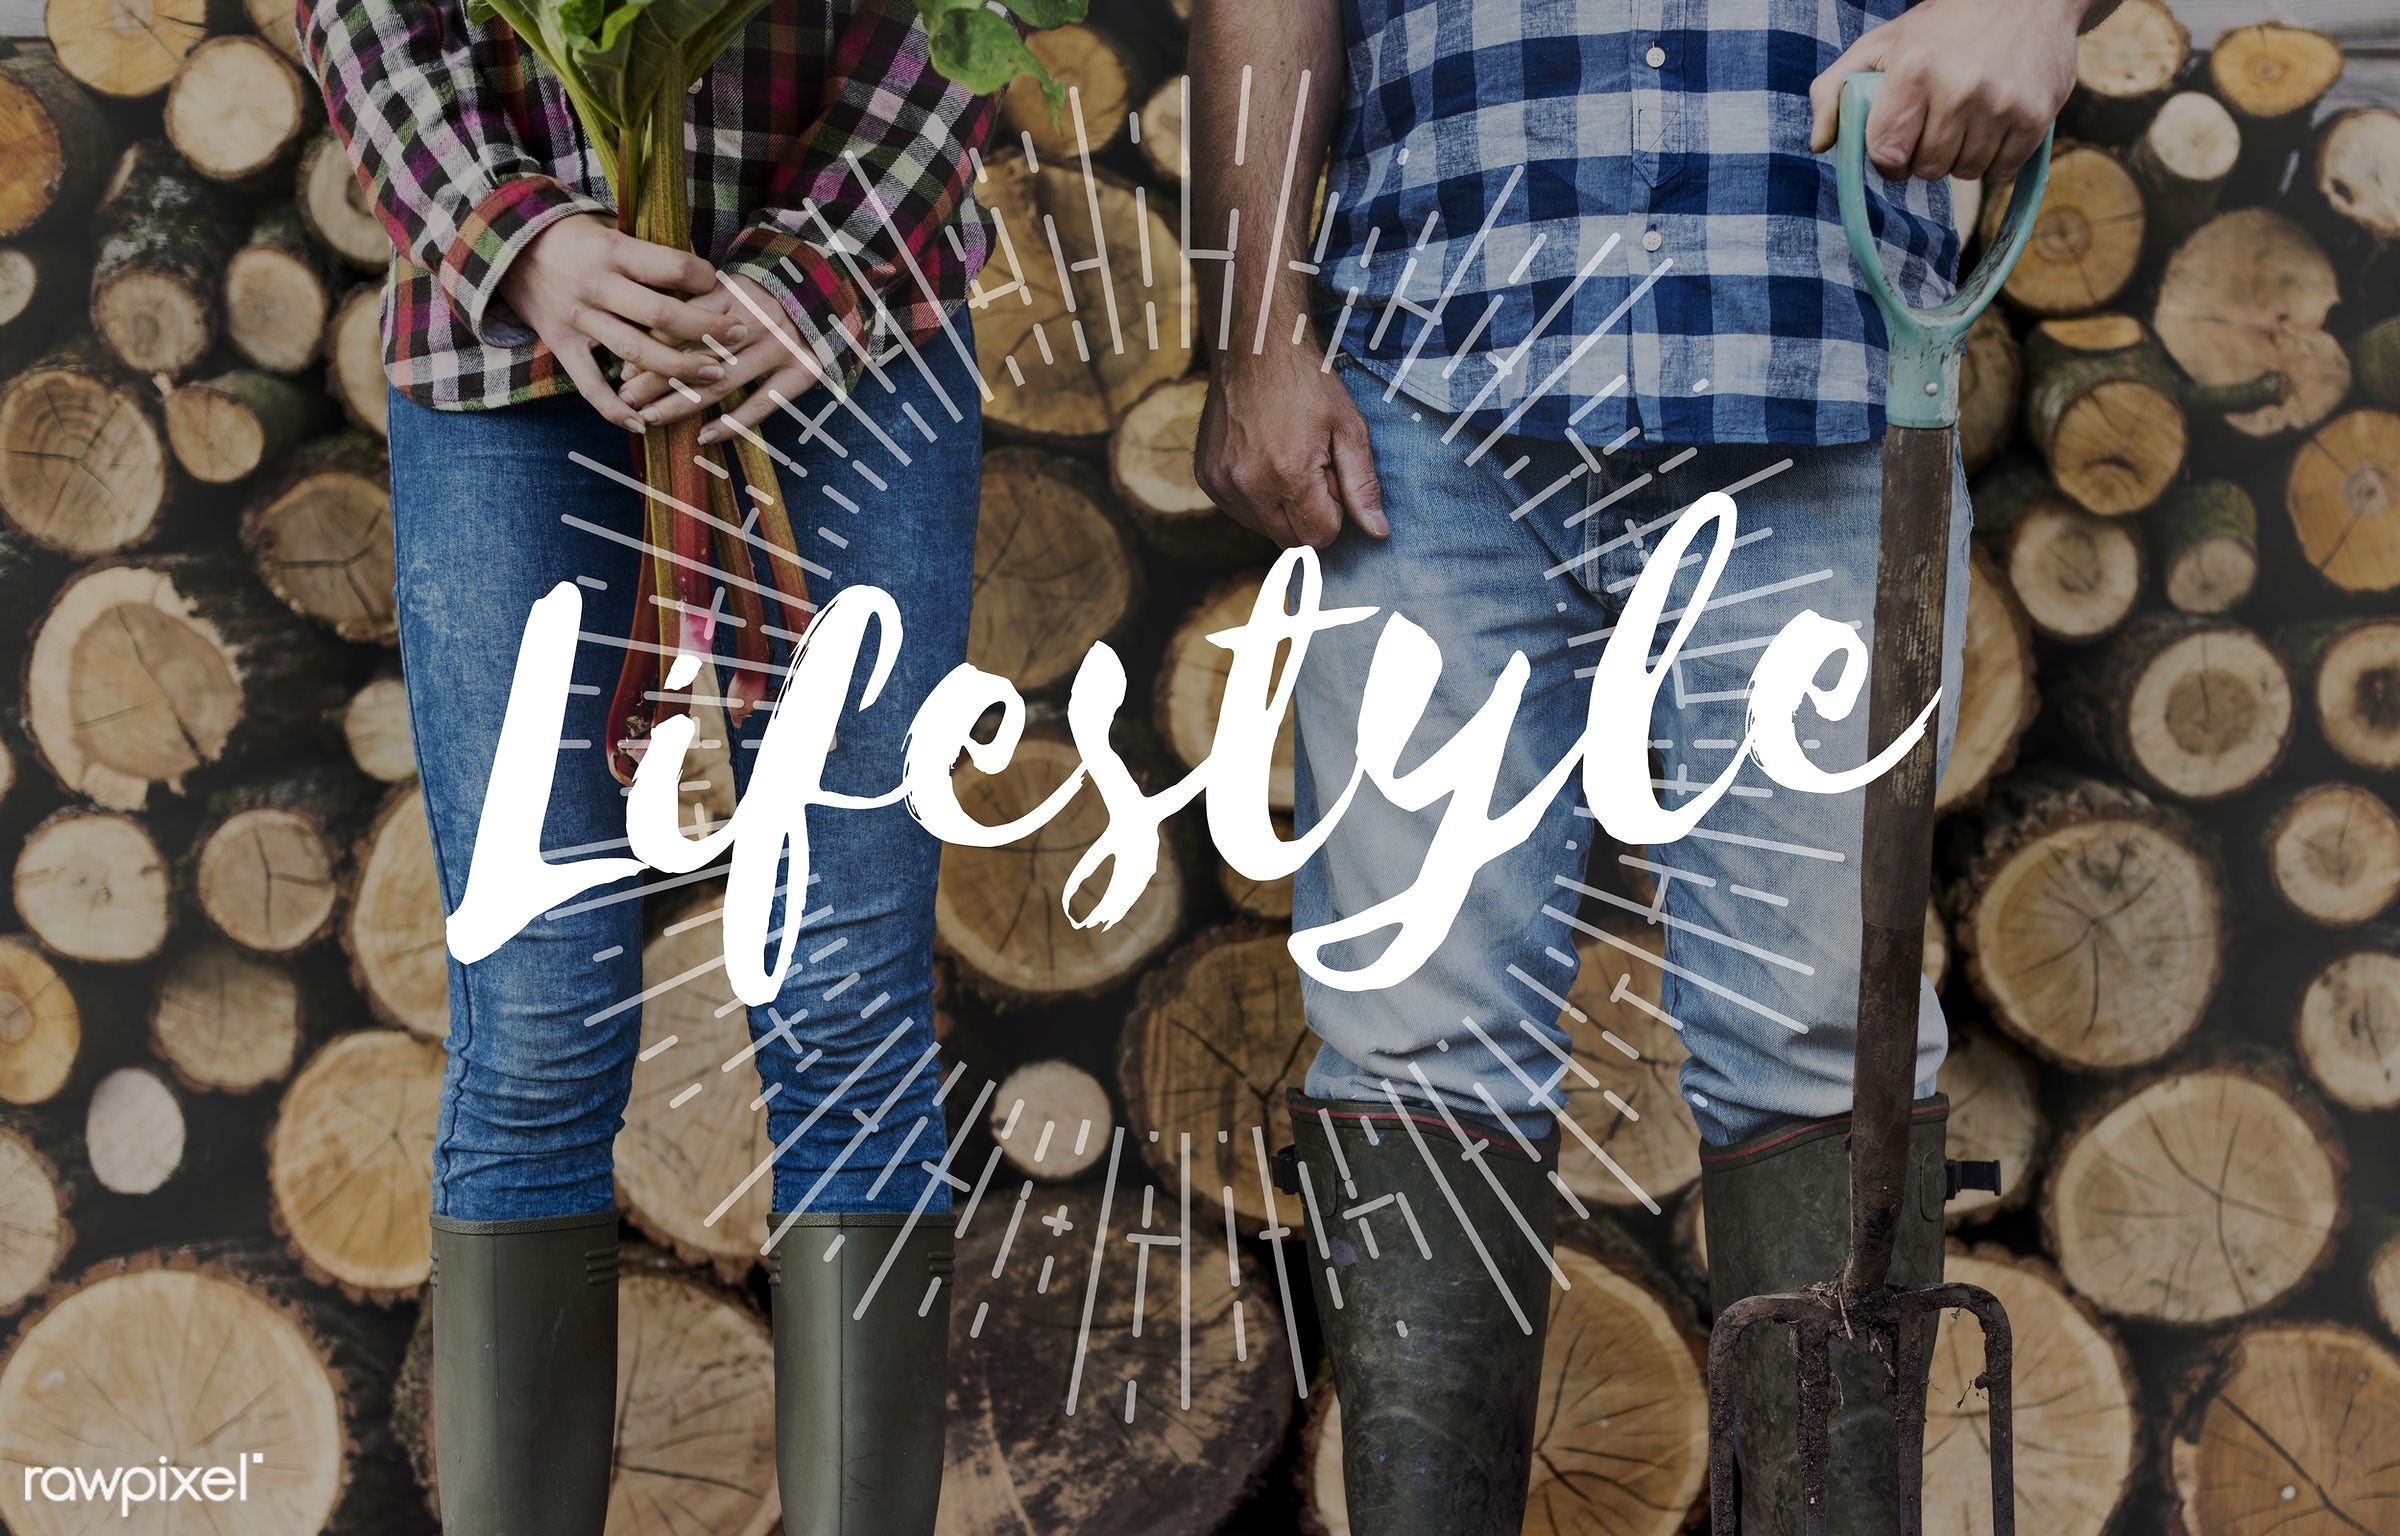 active, caucasian, diet, exercise, farm, farmer, firewood, fit, habits, hands, health, healthy, hobbies, hobby, holding,...